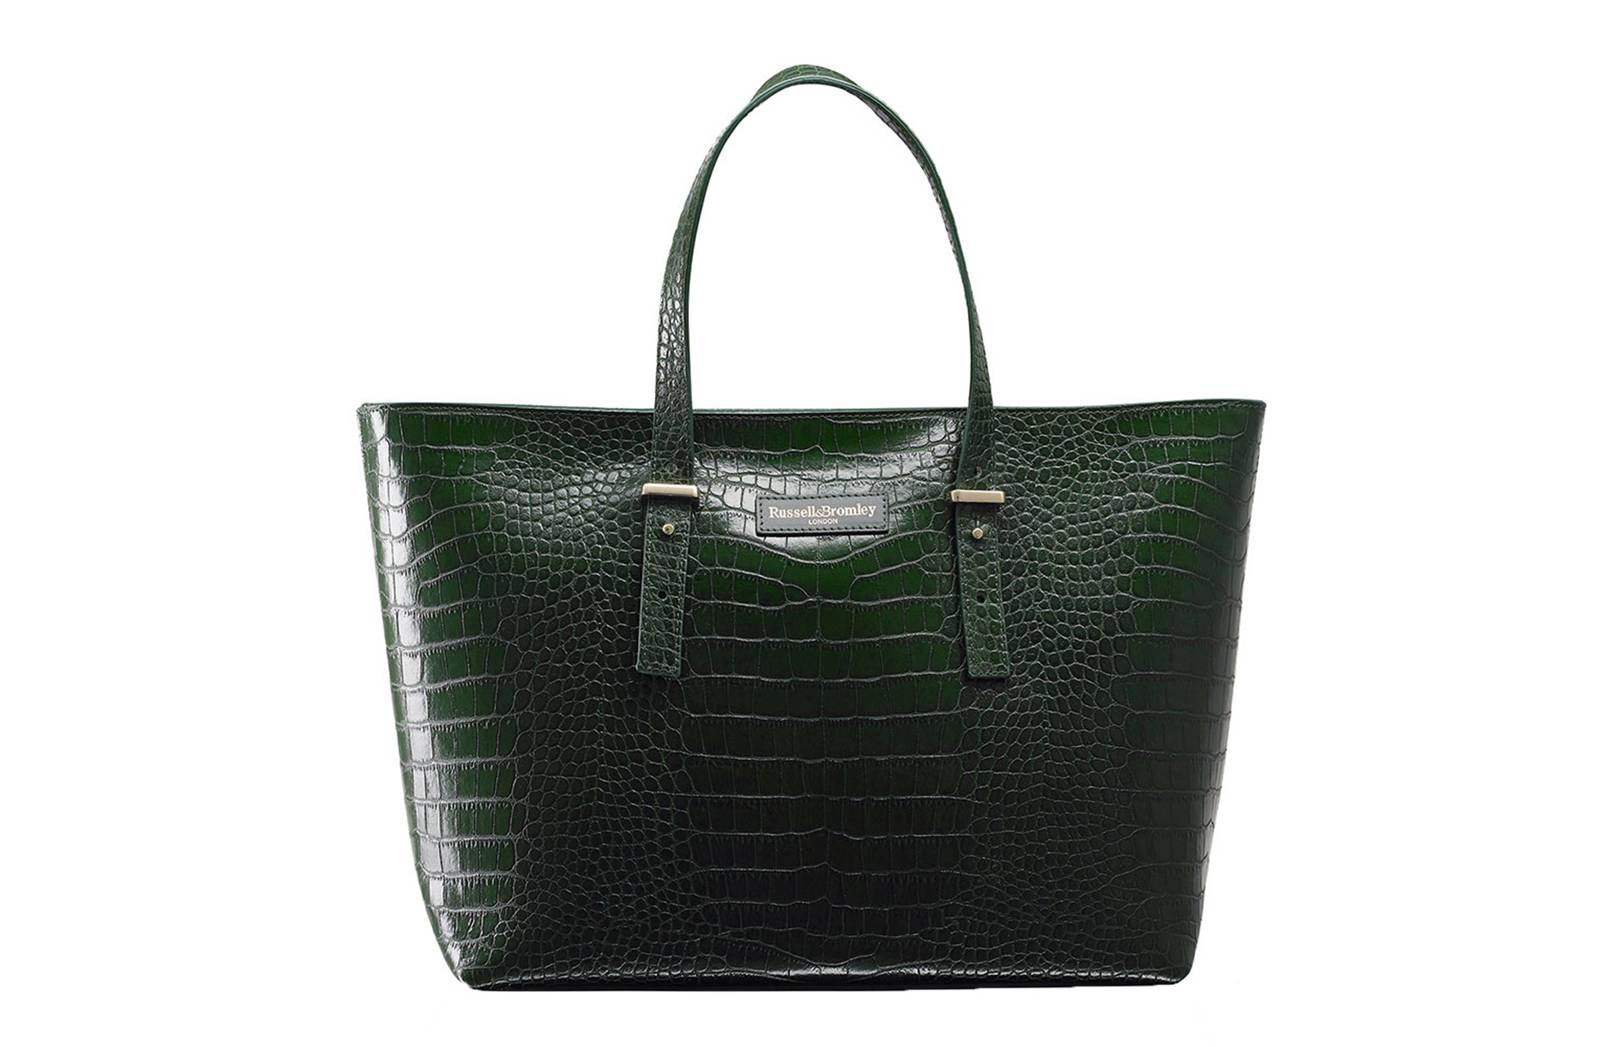 ebafa70b0496c The Tote Bag  The Best Styles To Wear With Everything